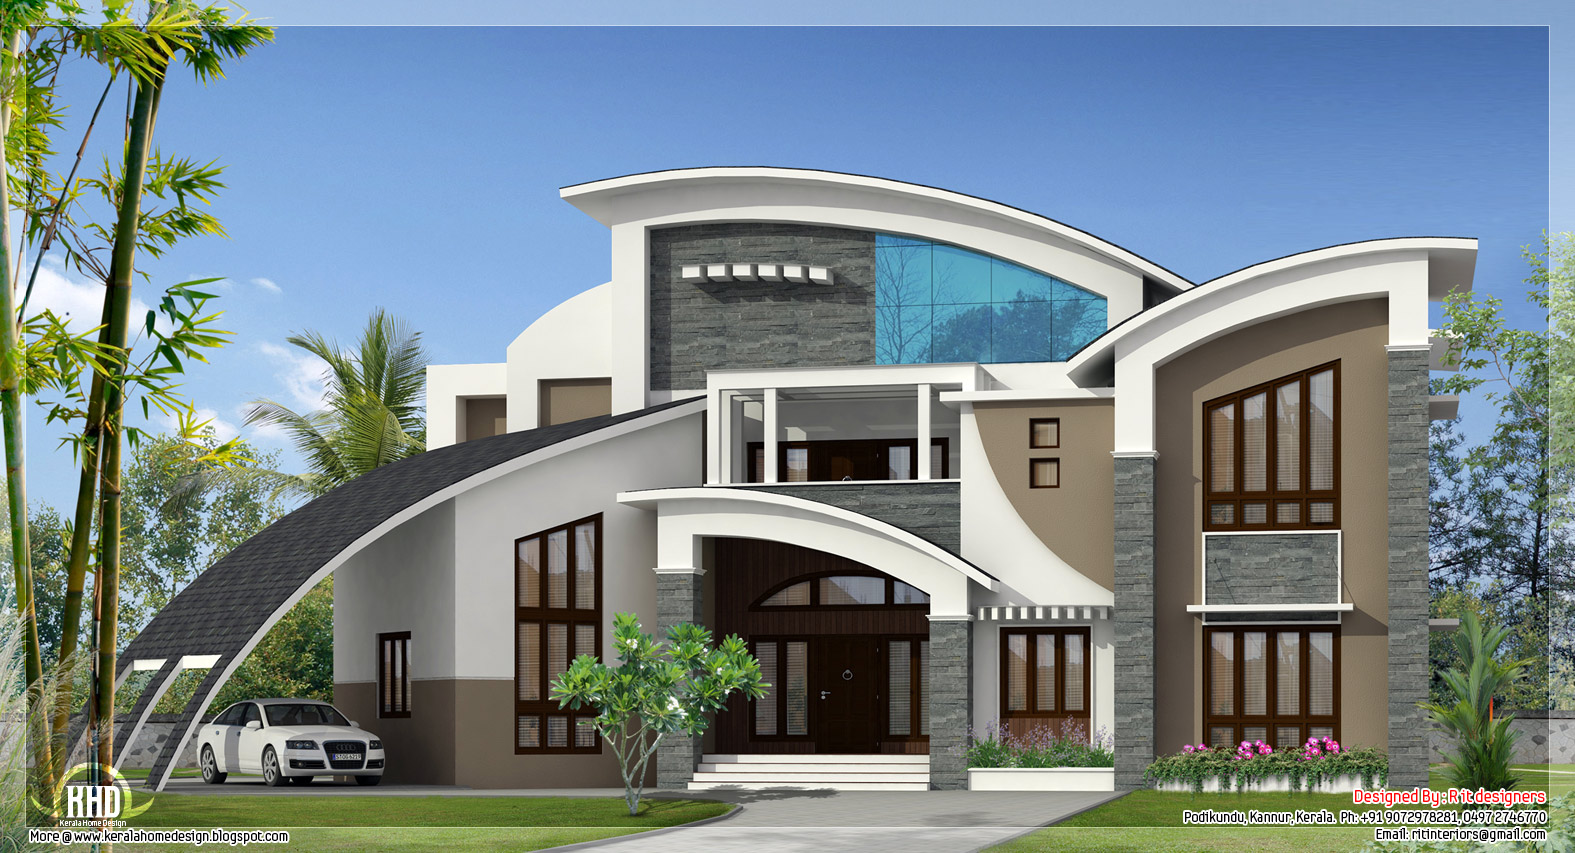 Unique home design 18523 hd wallpapers background for Www homedesign com